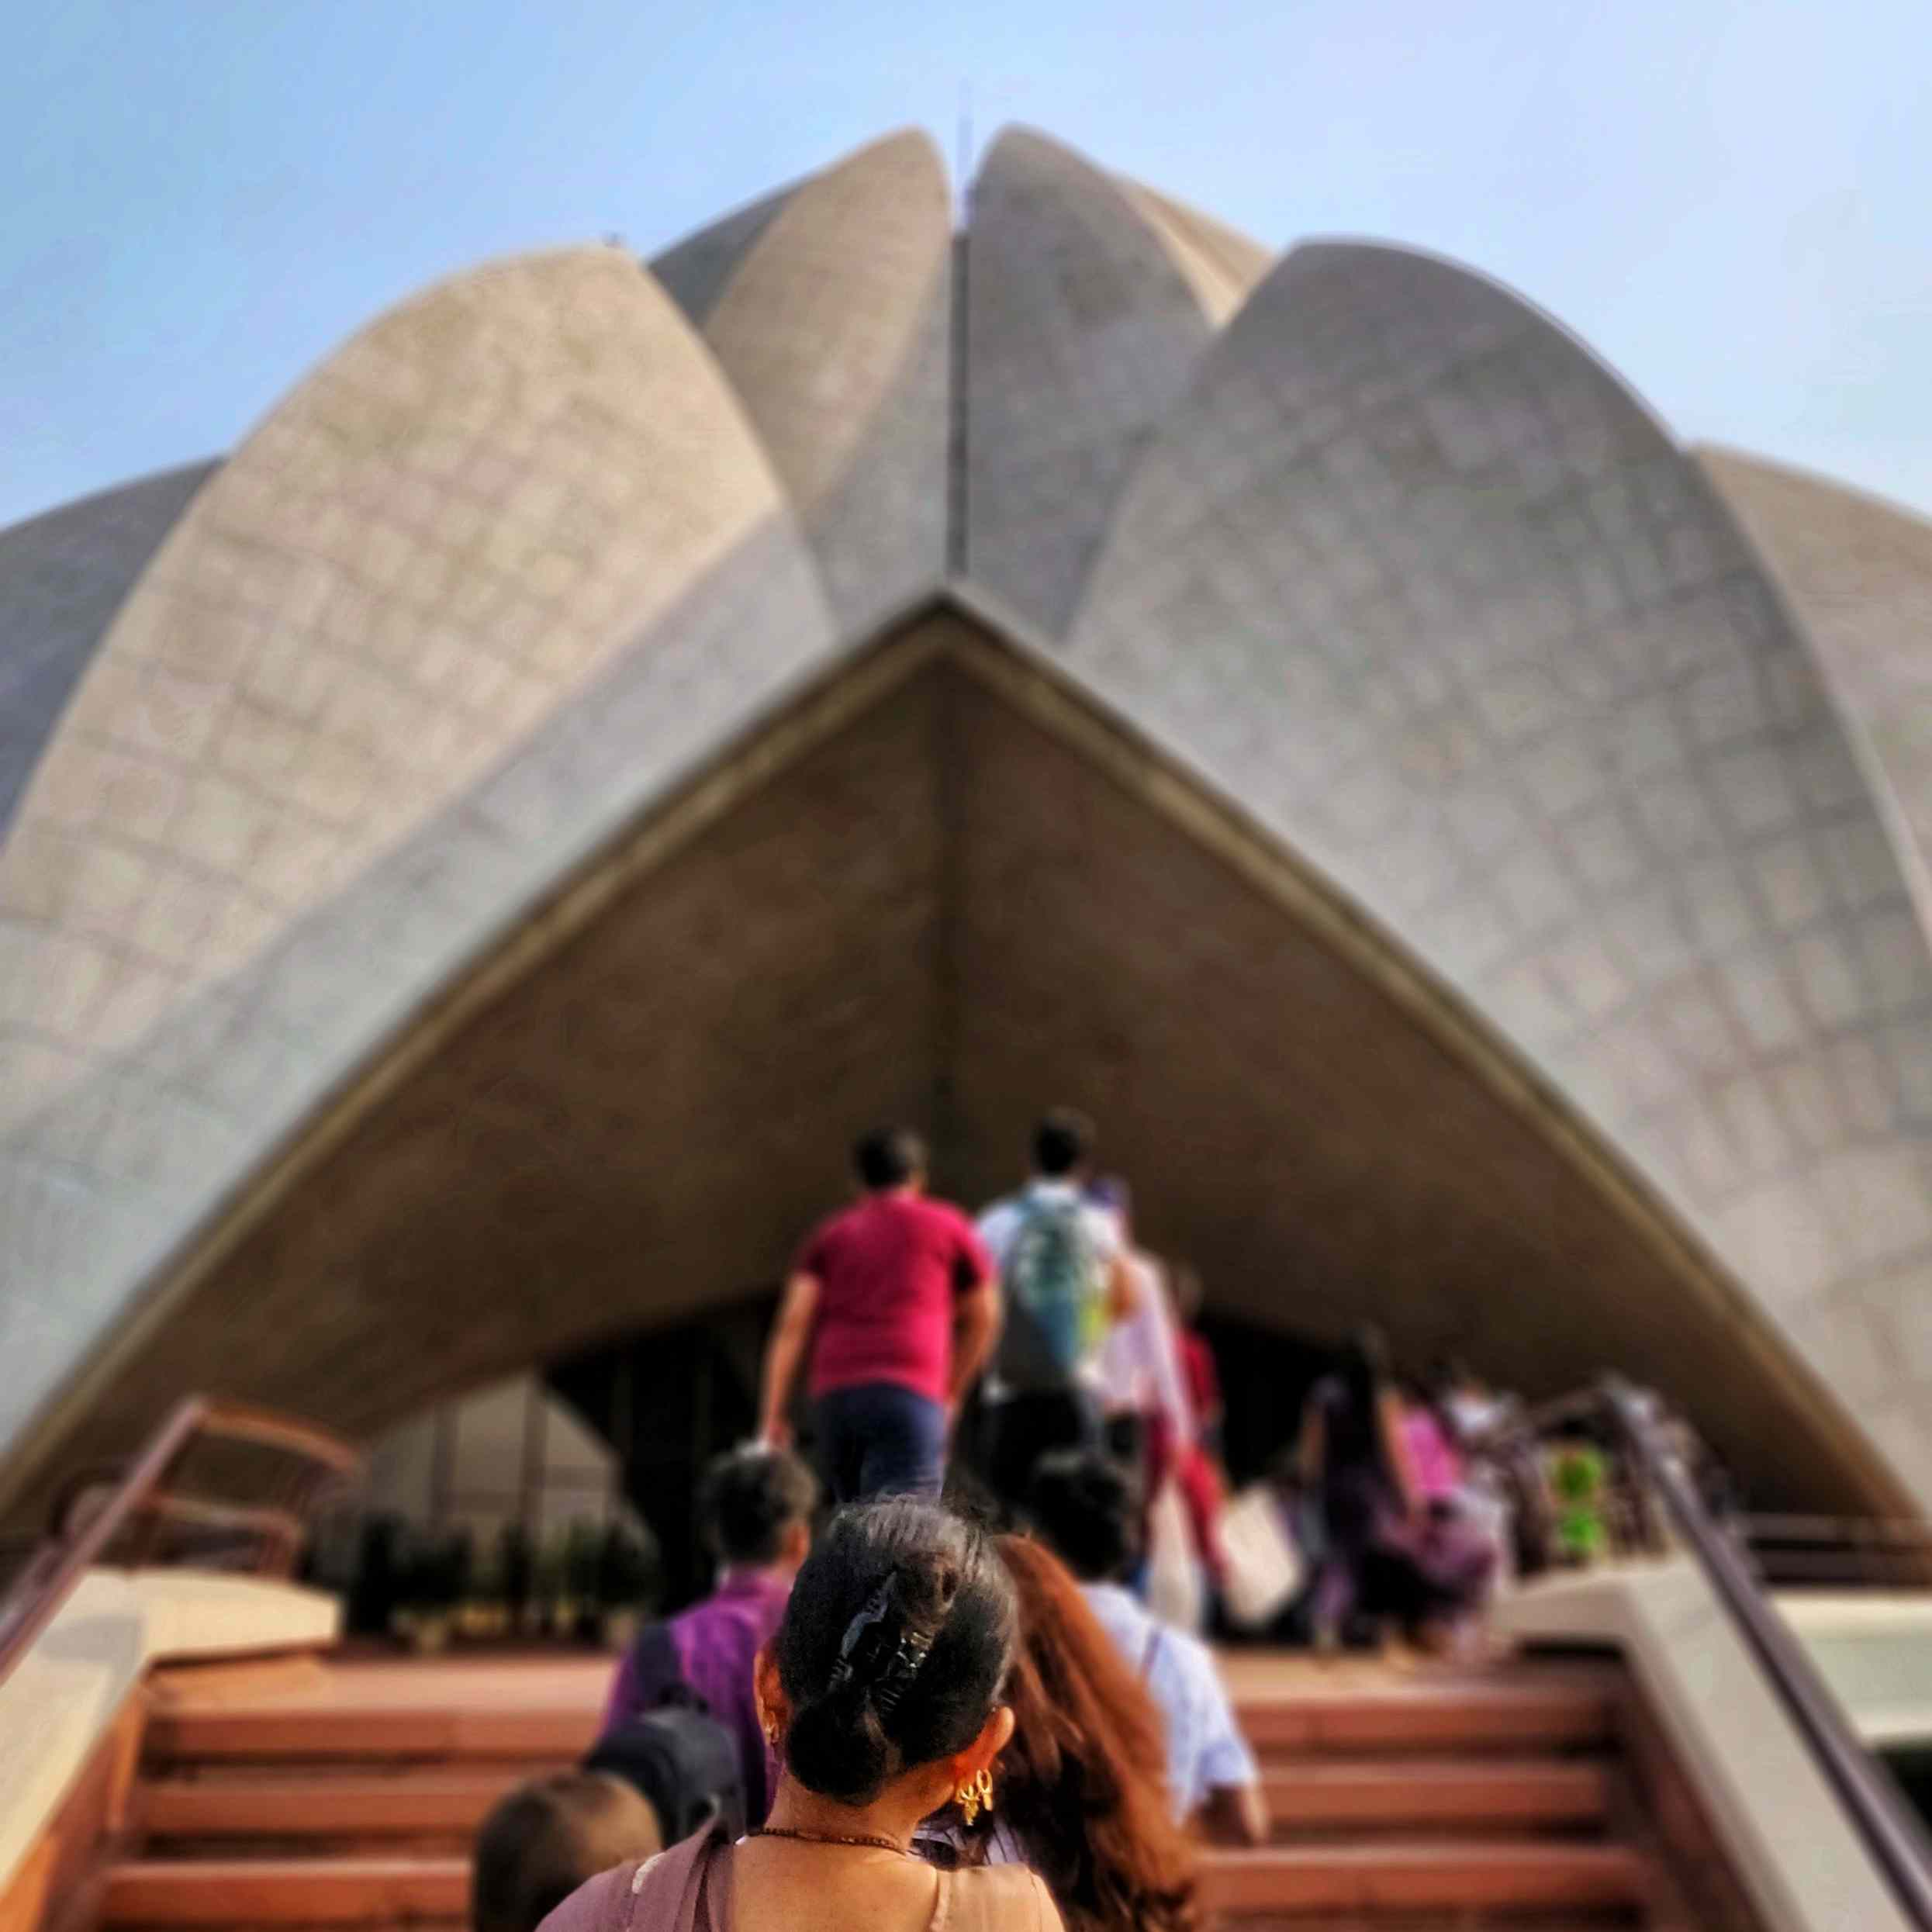 A line of people waiting to enter the lotus temple